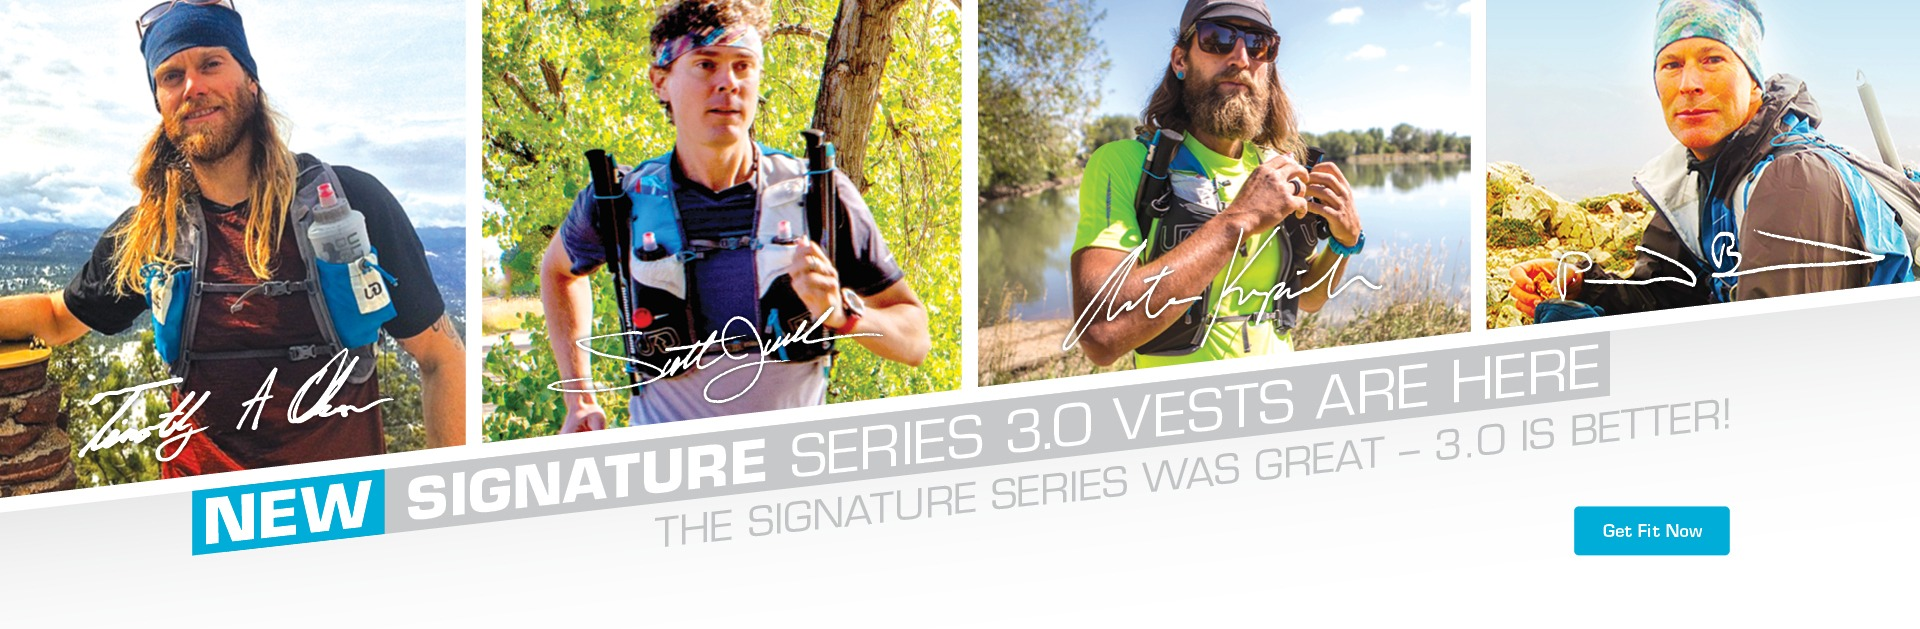 New Signature Series 3.0 Is Here!